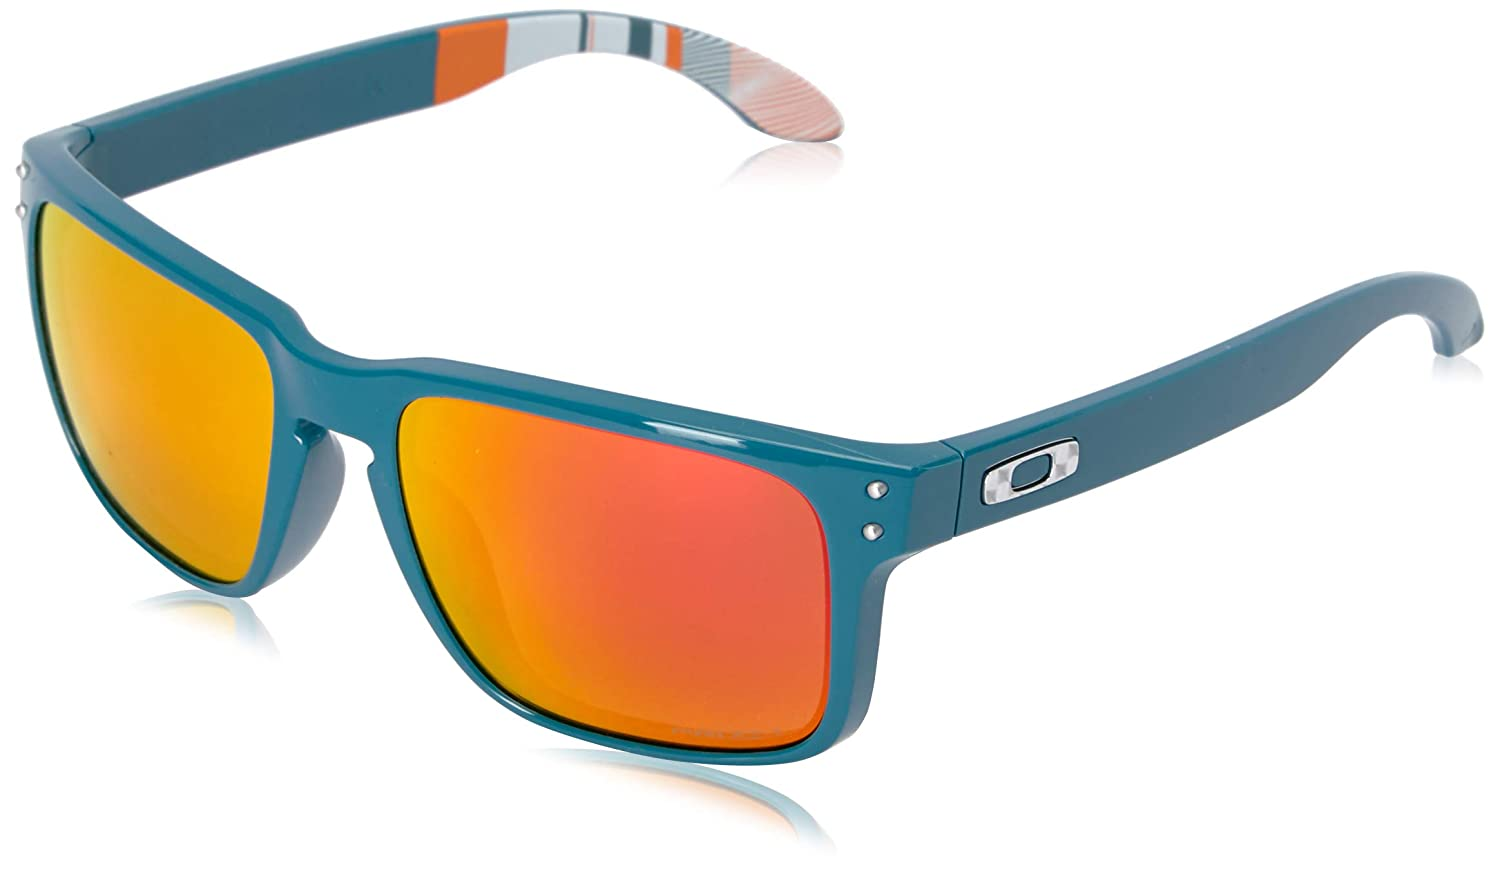 7ea76d037aaa6 Amazon.com  Oakley Men s Holbrook Non-Polarized Iridium Square Sunglasses,  Aero Baslam, 57.0 mm  Clothing